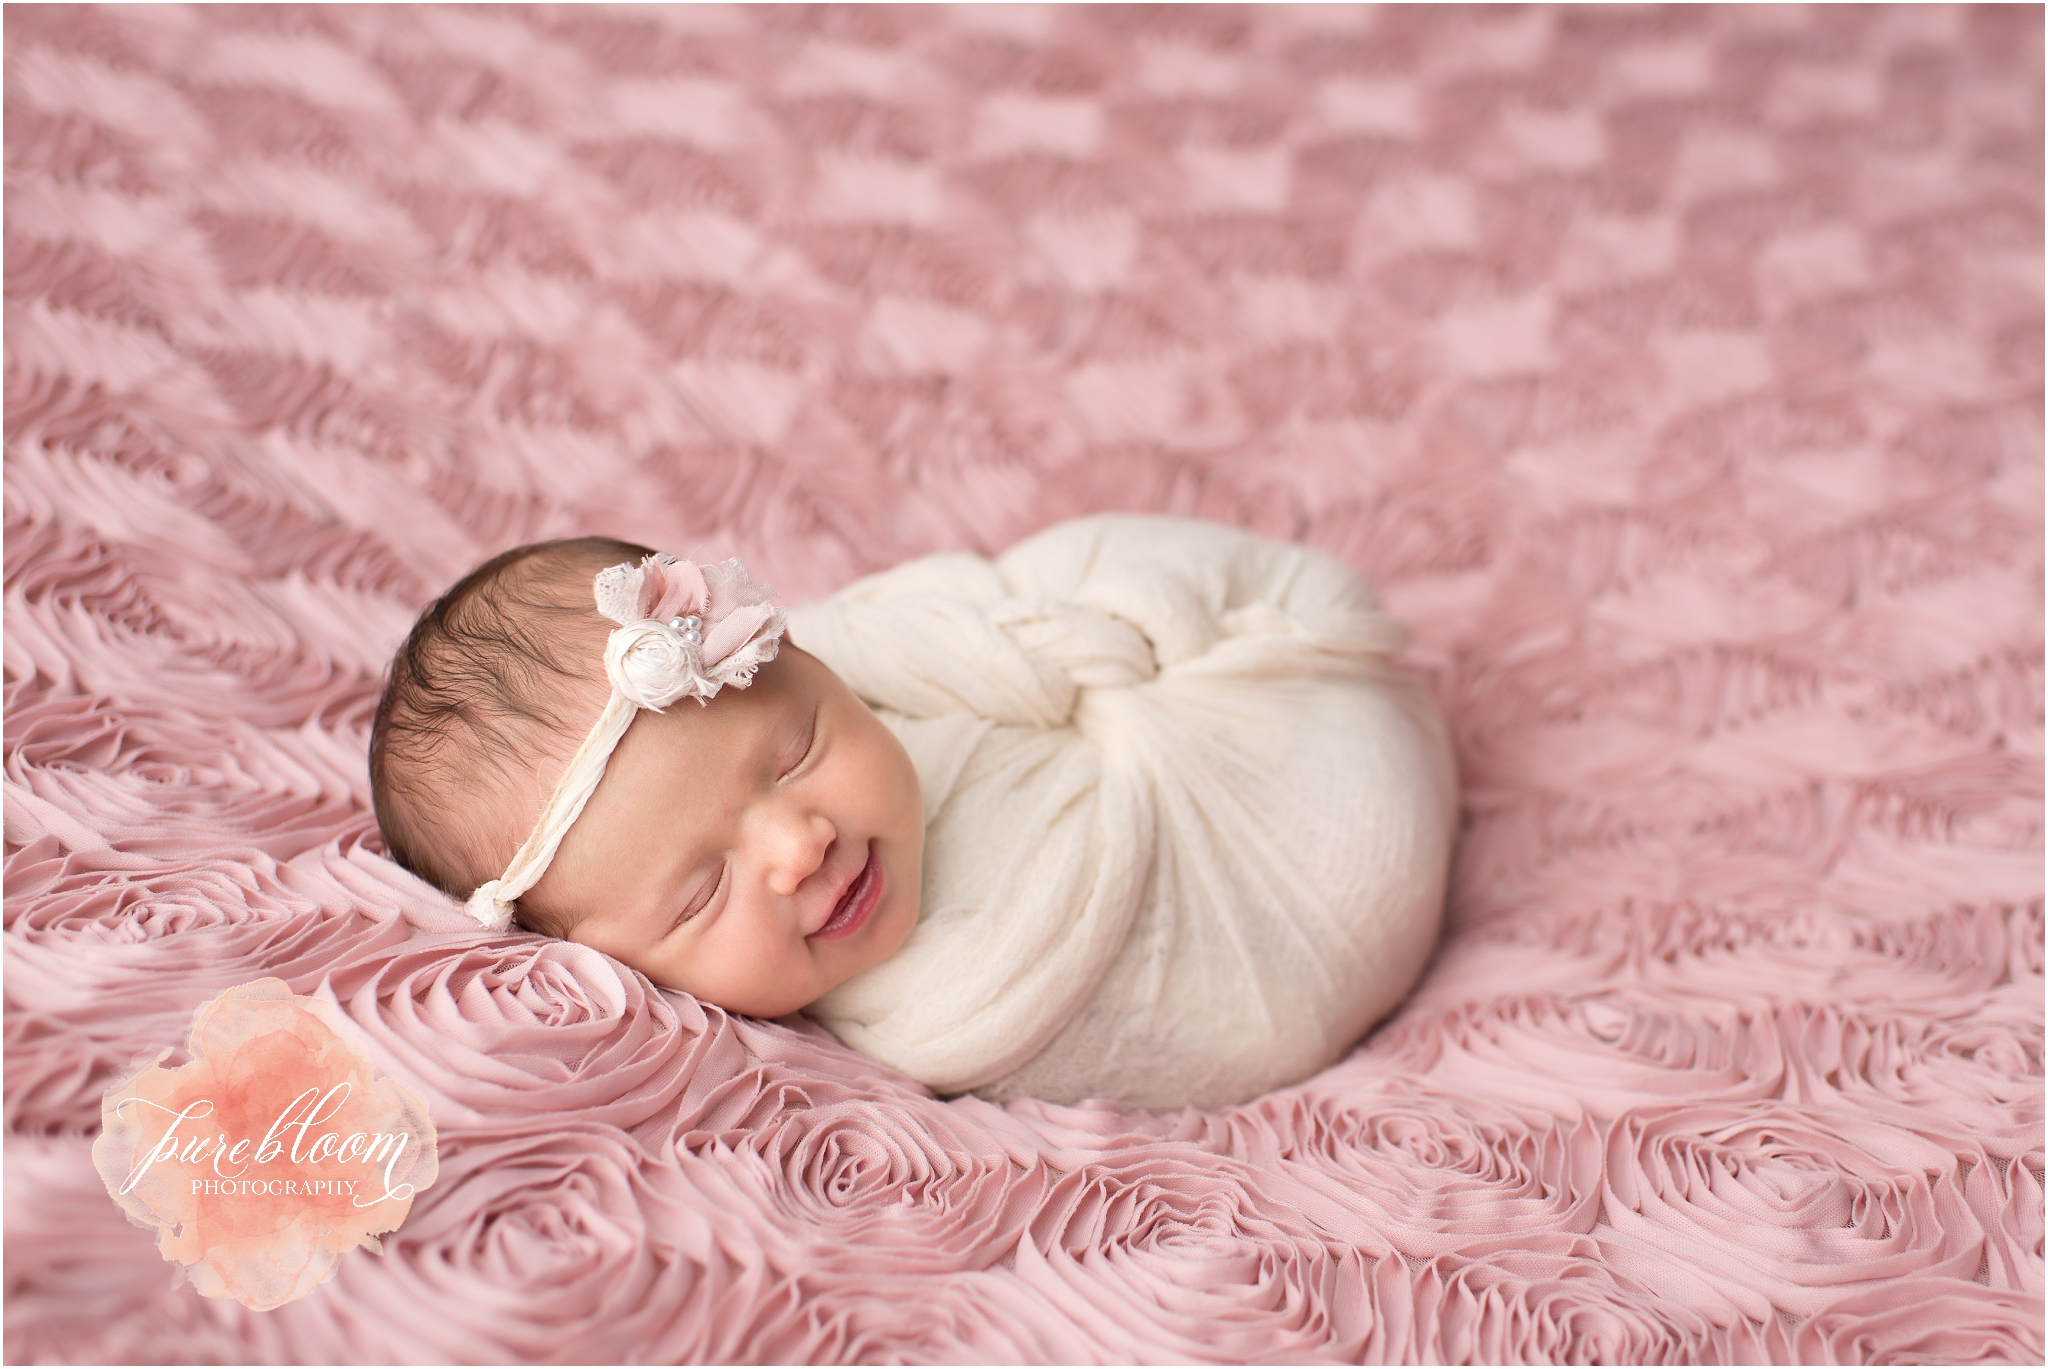 Tampa Artistic Newborn Photography | Baby Gabriella | Pure Bloom Photography